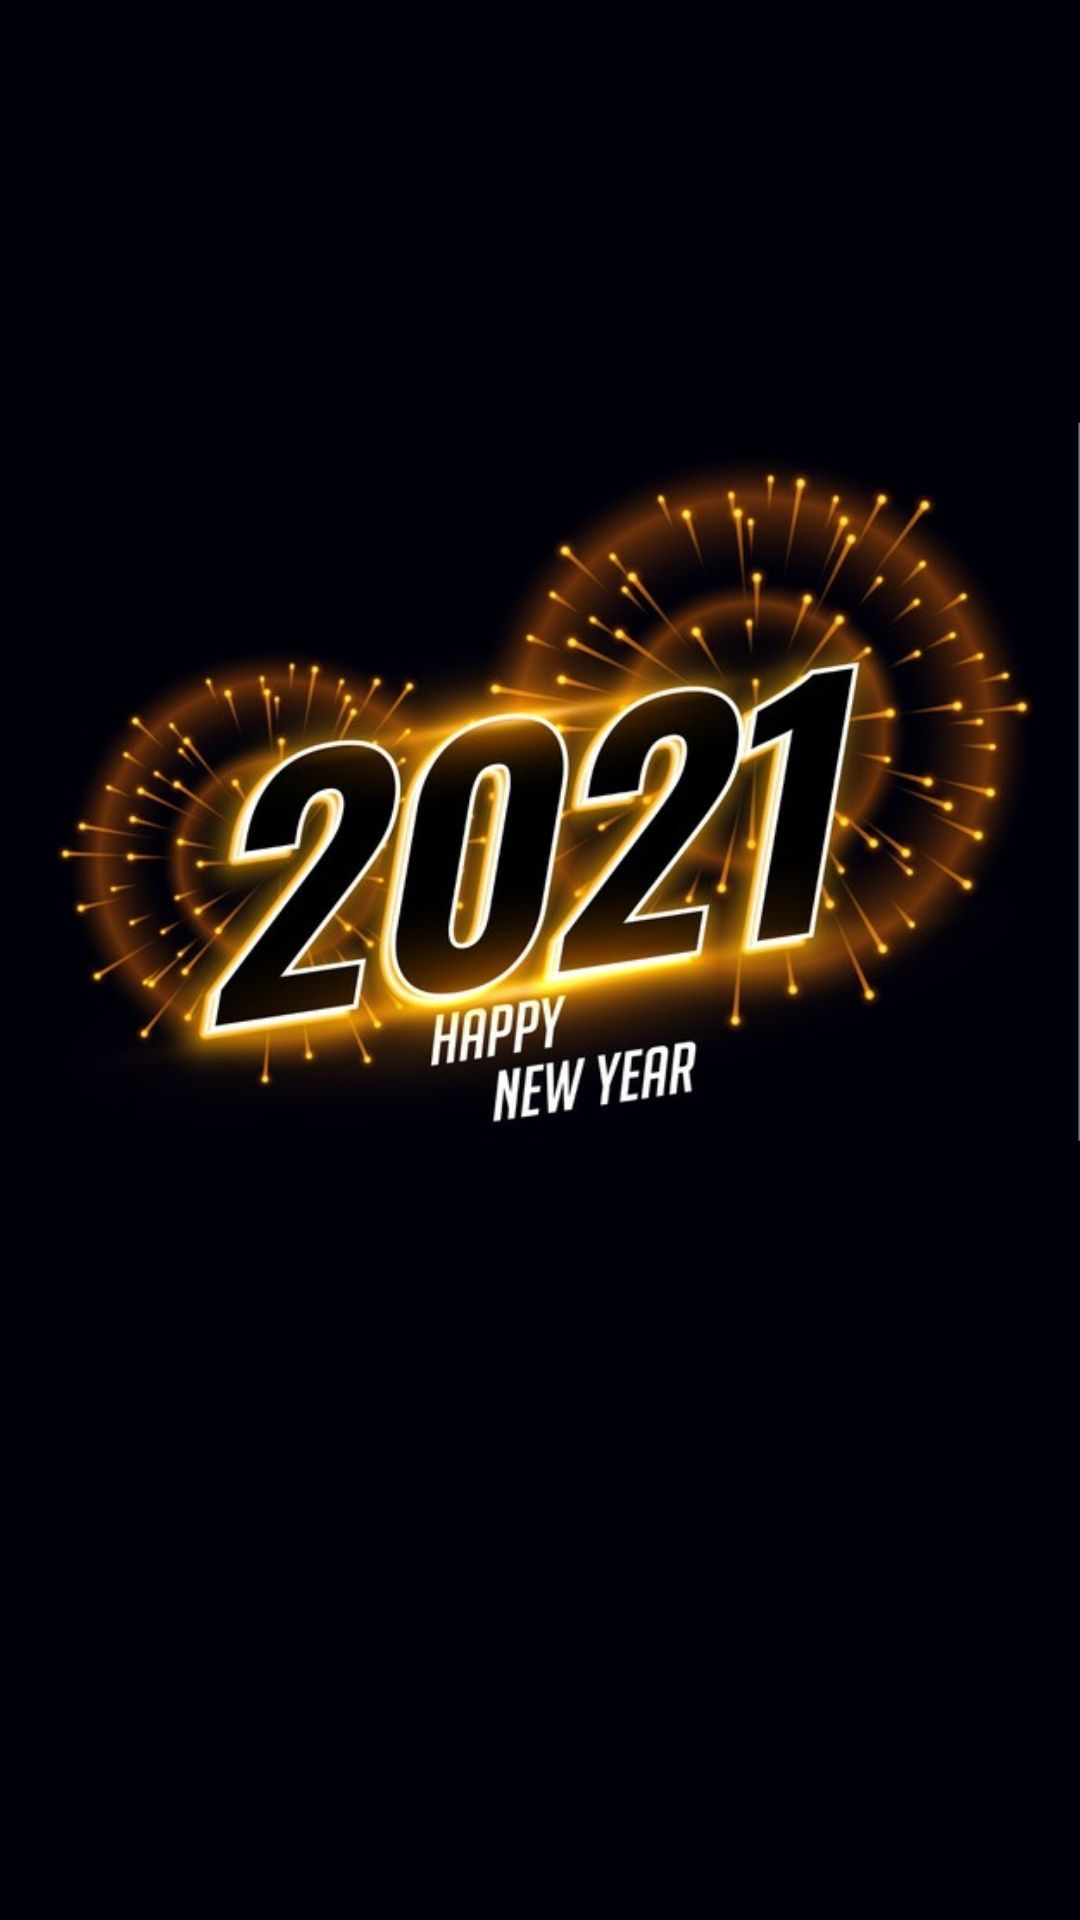 Happy New Year Hd Images 2021 Happy New Year Quotes Happy New Year Hd Happy New Year Images Happy new year 2021 wallpaper hd